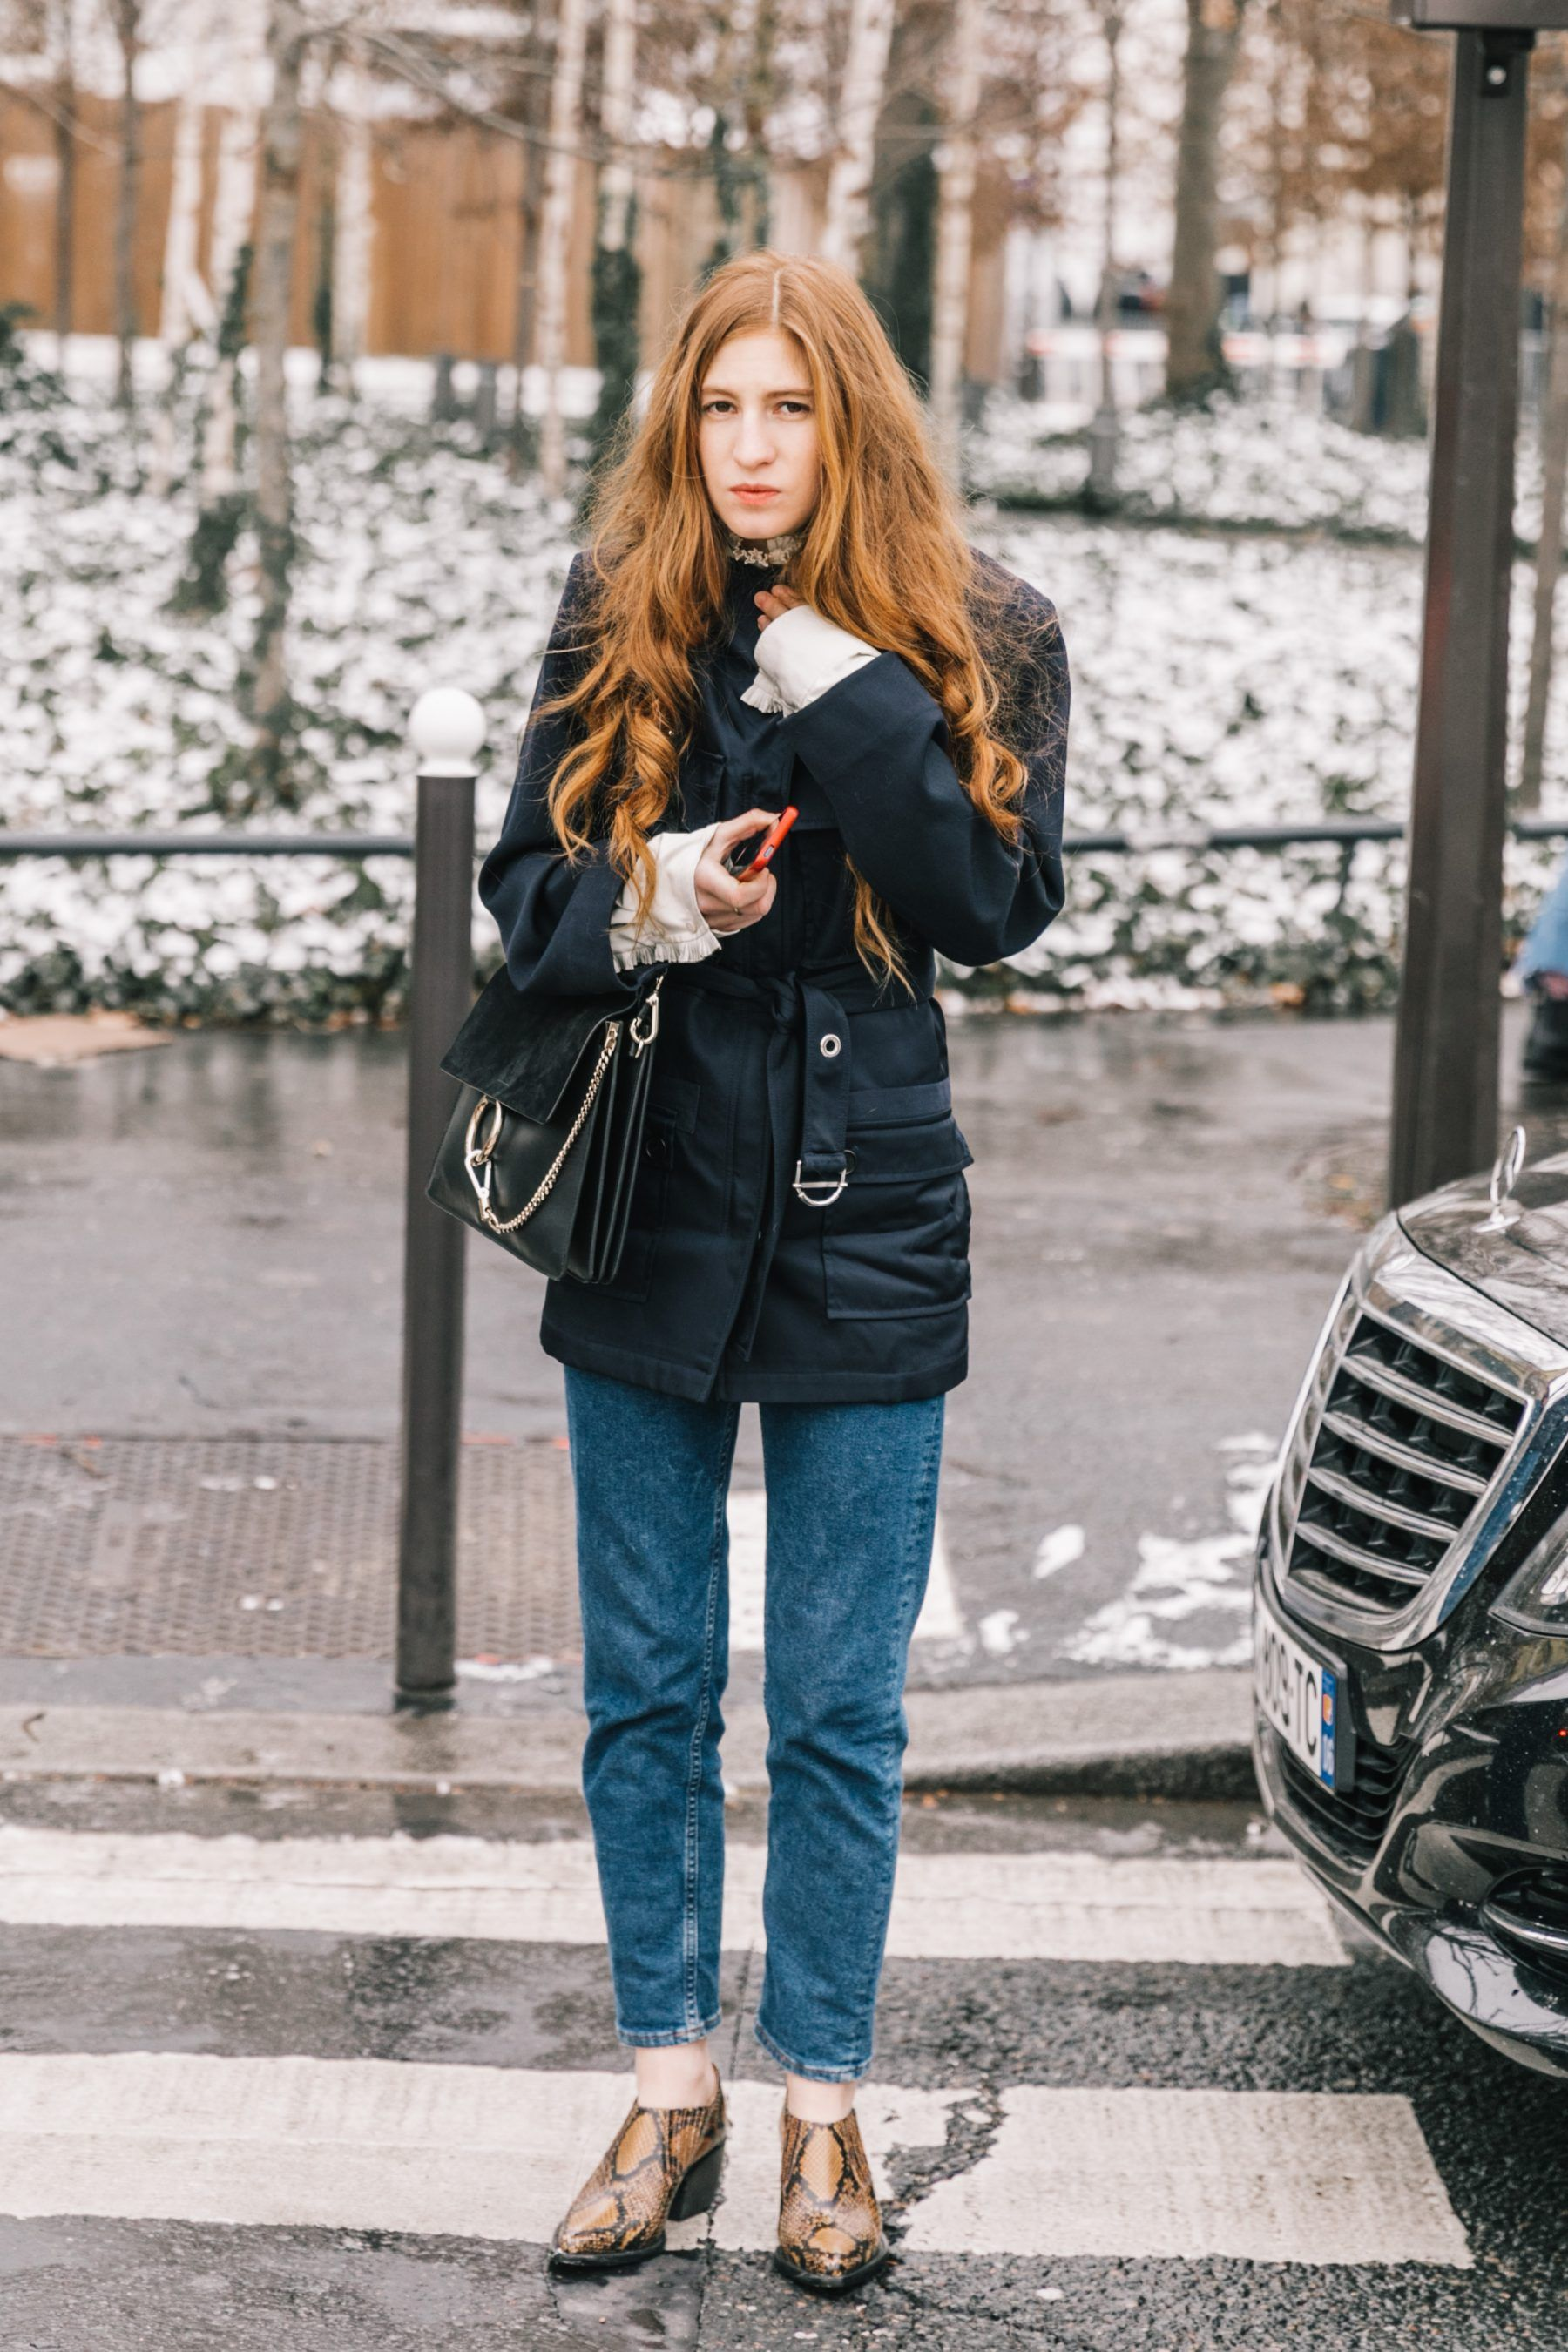 20 Fall Street Style Looks To Copy From Paris Fashion Week18/19  #designfinderstyling #